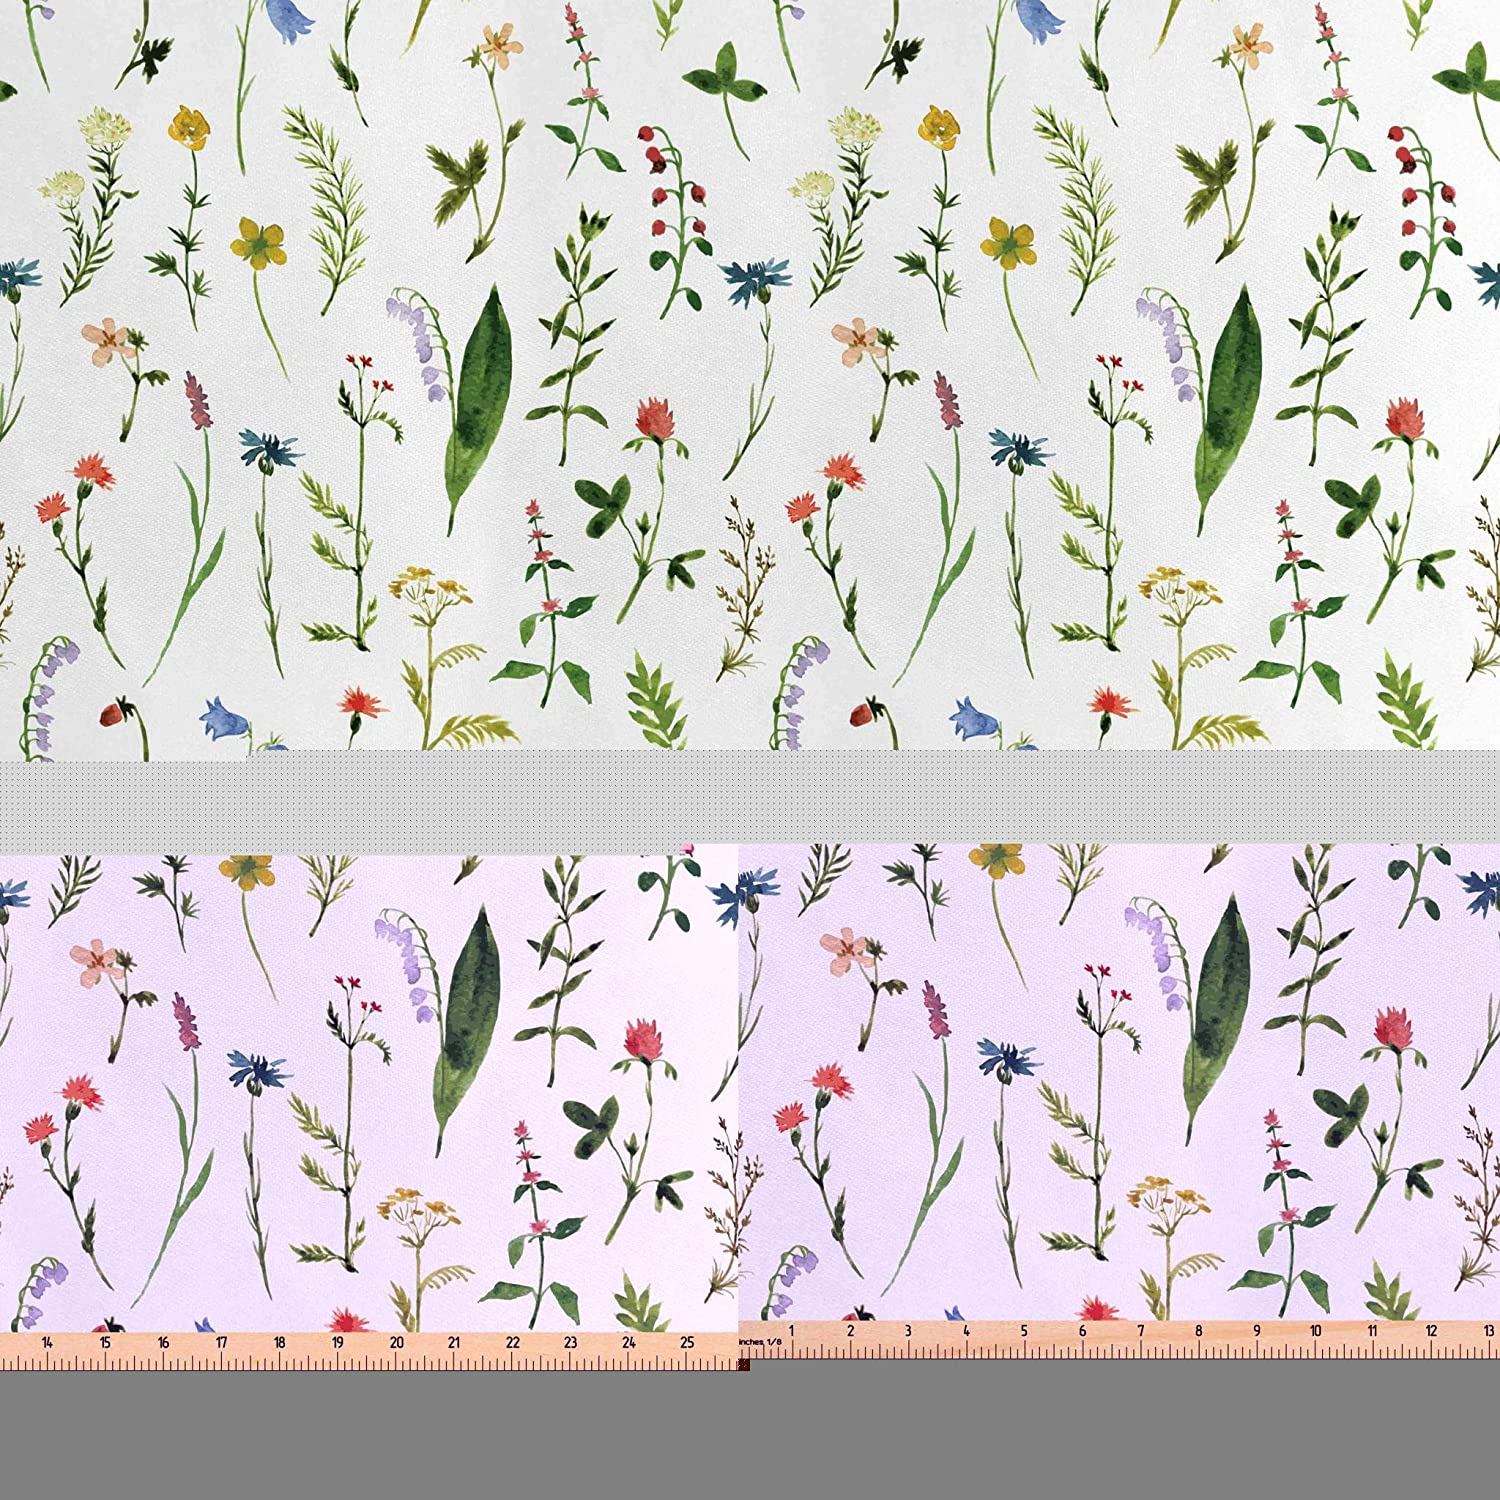 Lunarable Leaf Fabric by The Yard, Flourishing Spring Meadow with Various Wildflowers Nature Themed Watercolor Art, Decorative Satin Fabric for Home Textiles and Crafts, Multicolor